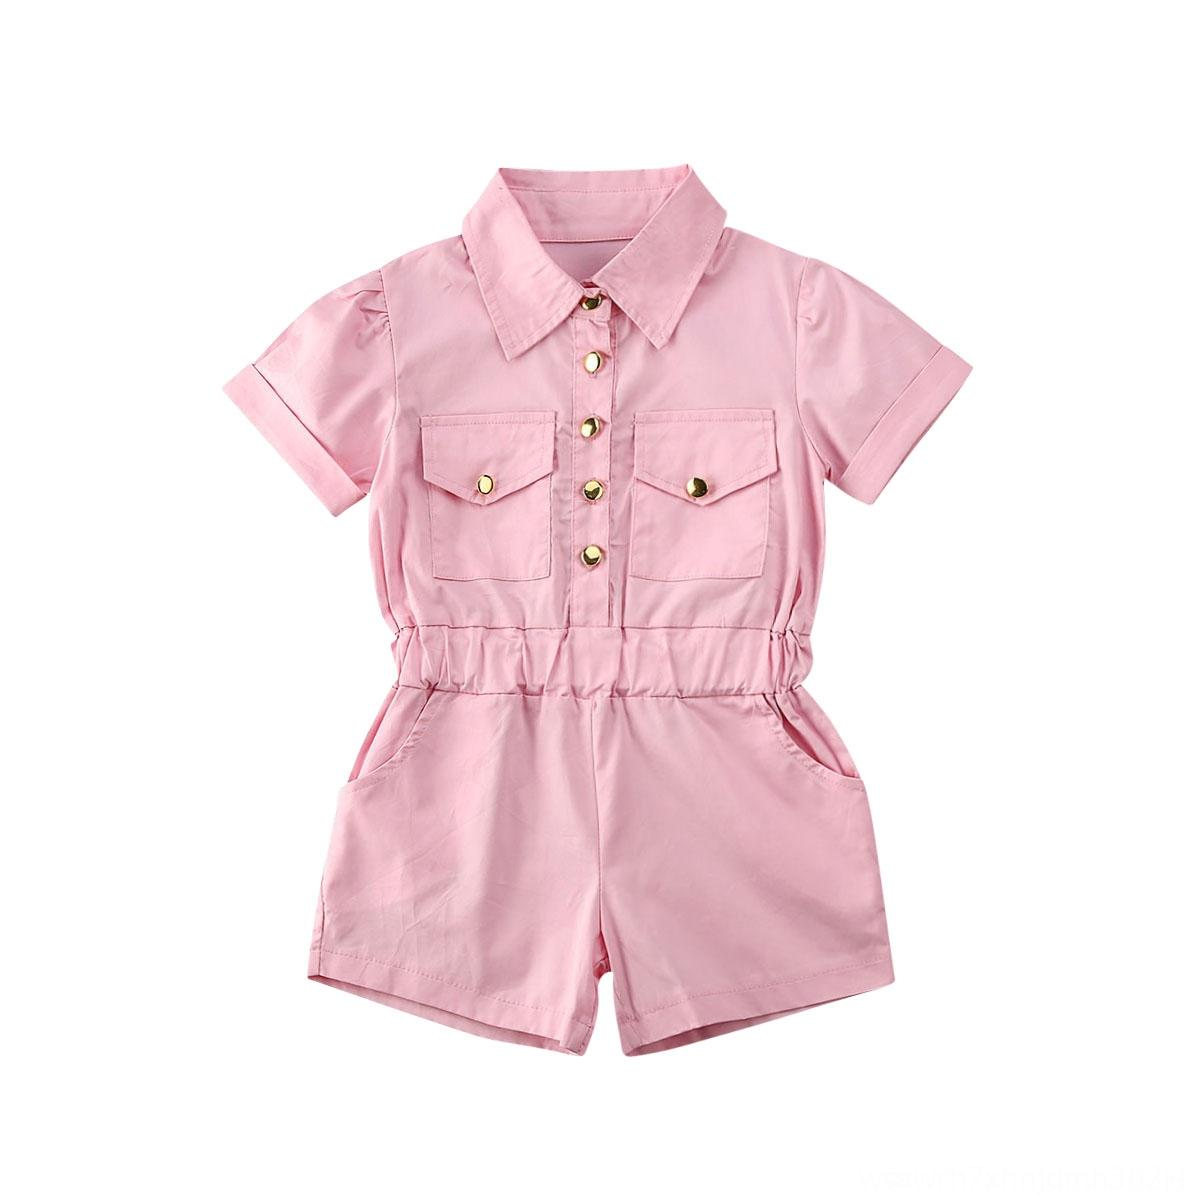 1-6Y Toddler Baby Kid Girls Vintage Jumpsuit Summer Jumpsuits&Rompers Baby & Kids Clothing Short Sleeve Romper Children Girls Costumes